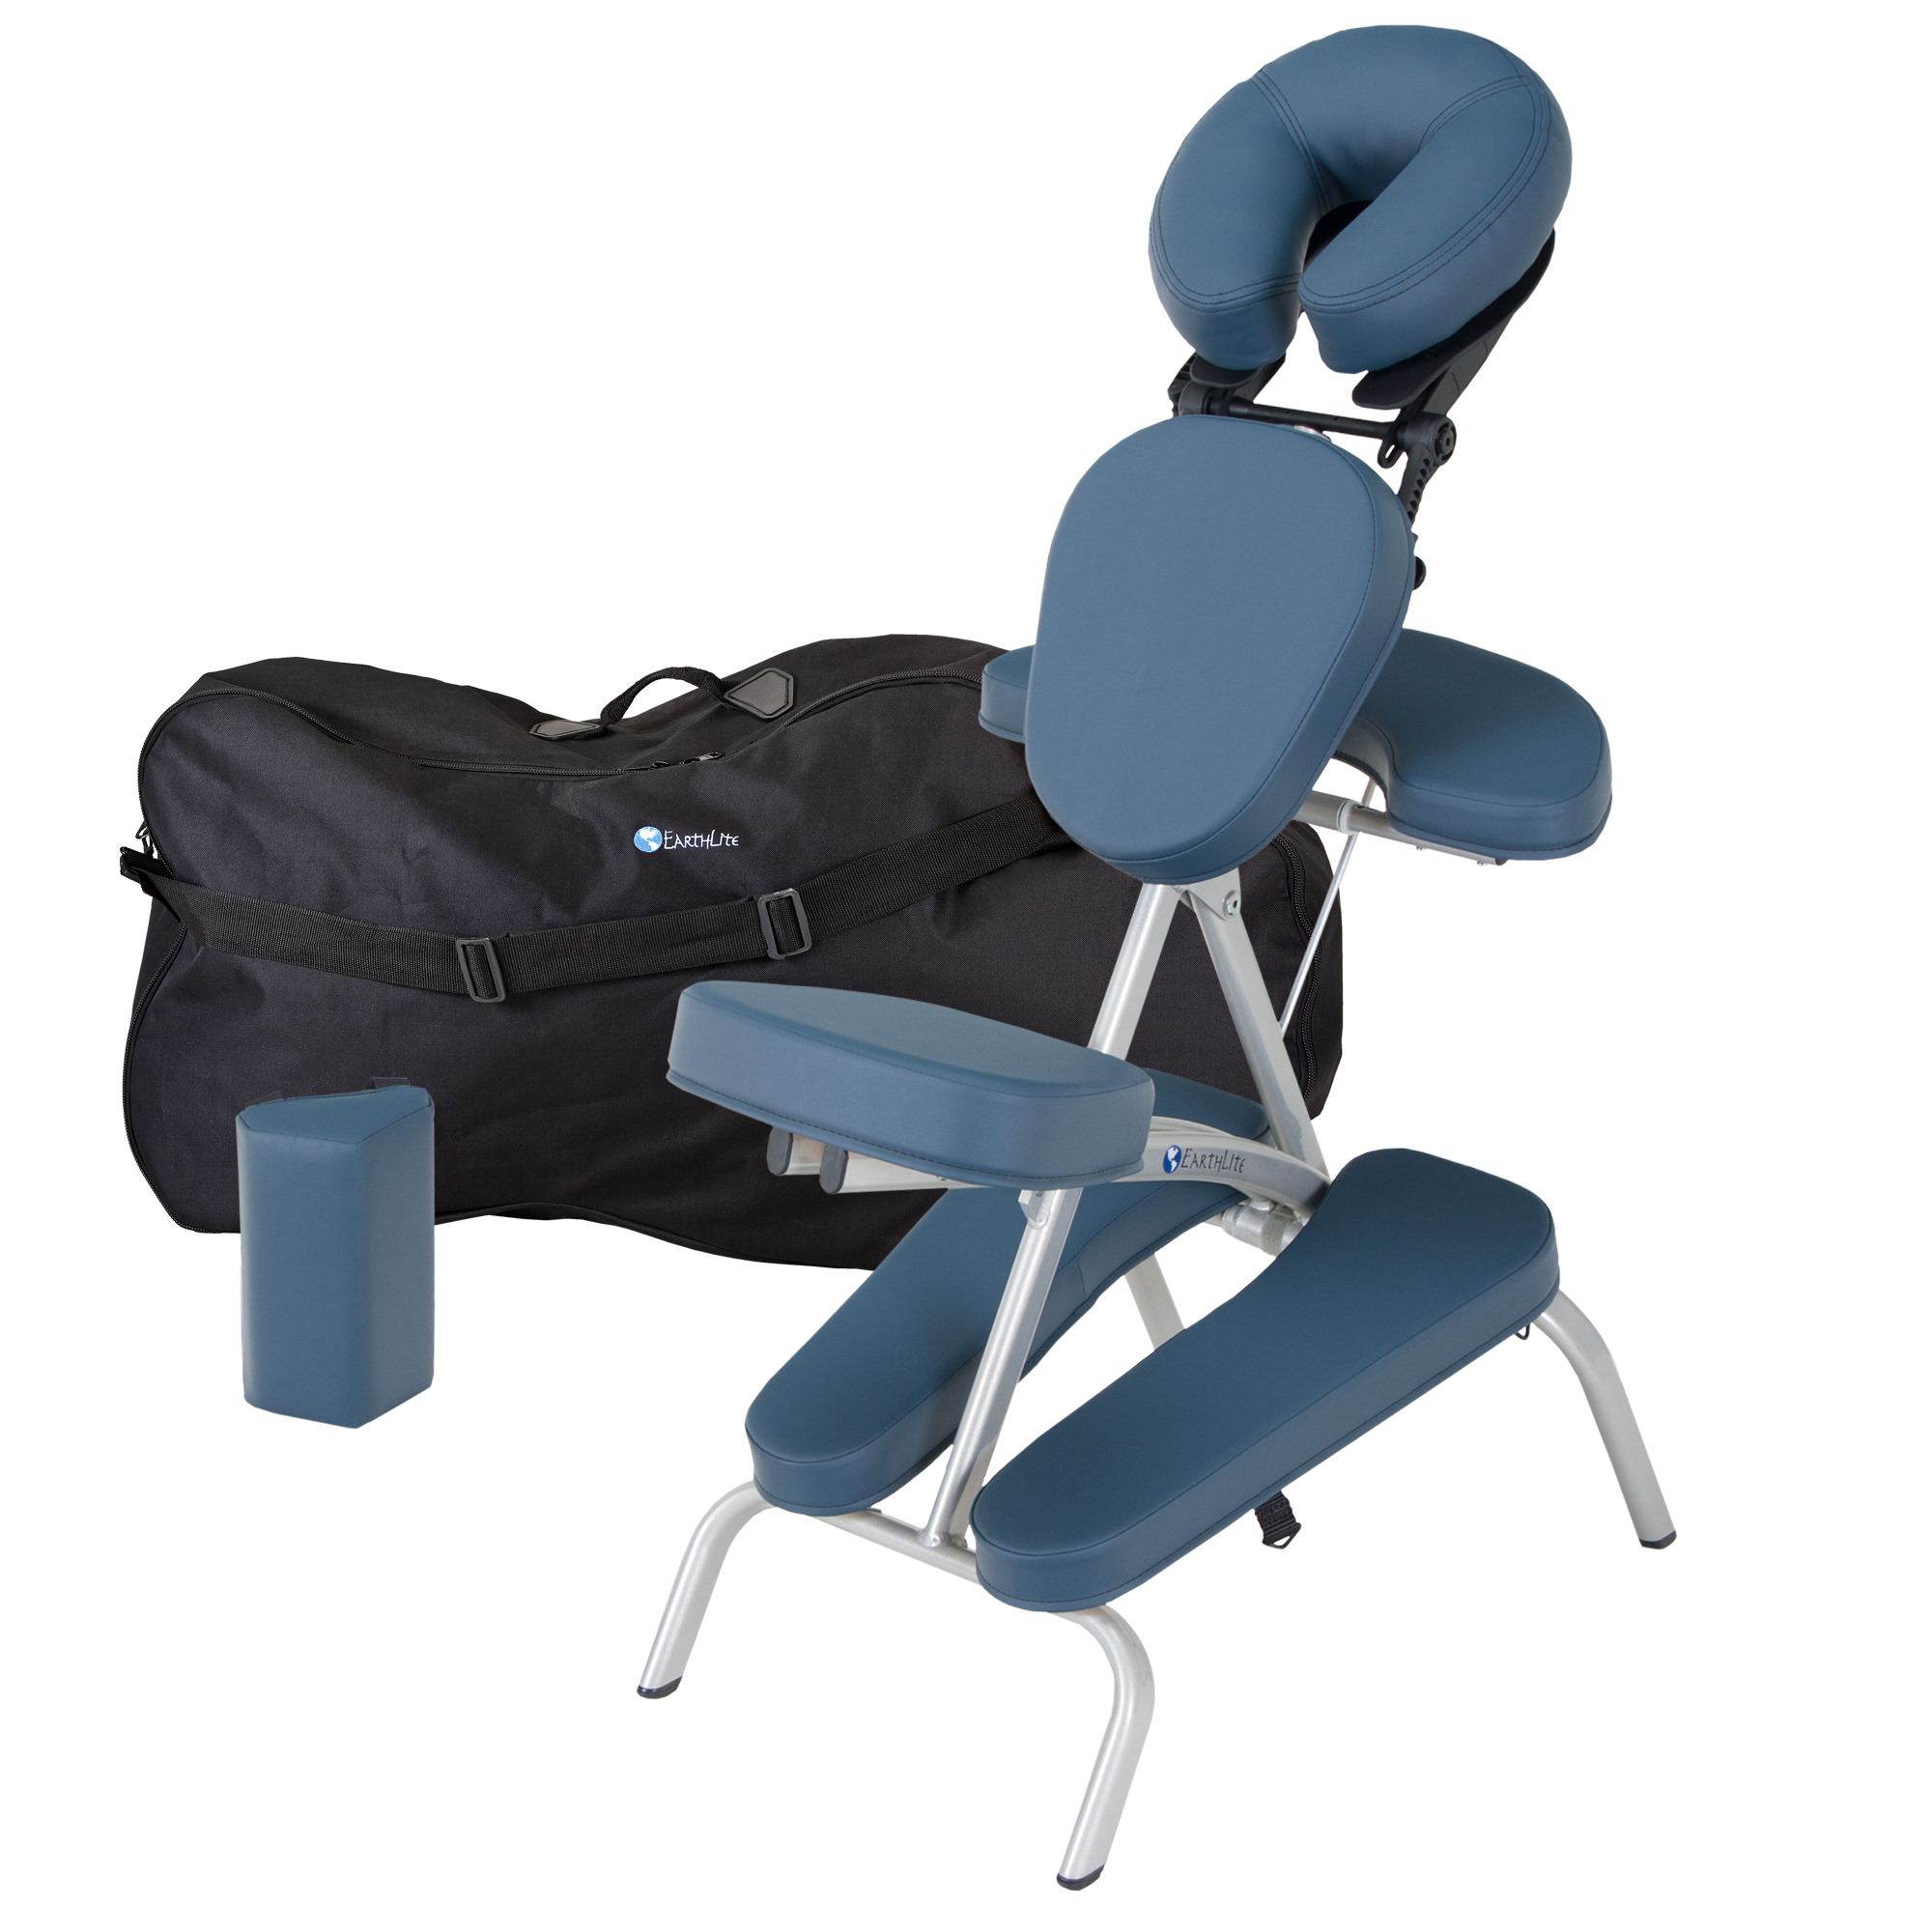 EARTHLITE Vortex Portable Massage Chair Package - Portable, Compact, Strong and Lightweight (15lb) incl. Carry Case, Sternum Pad & Strap